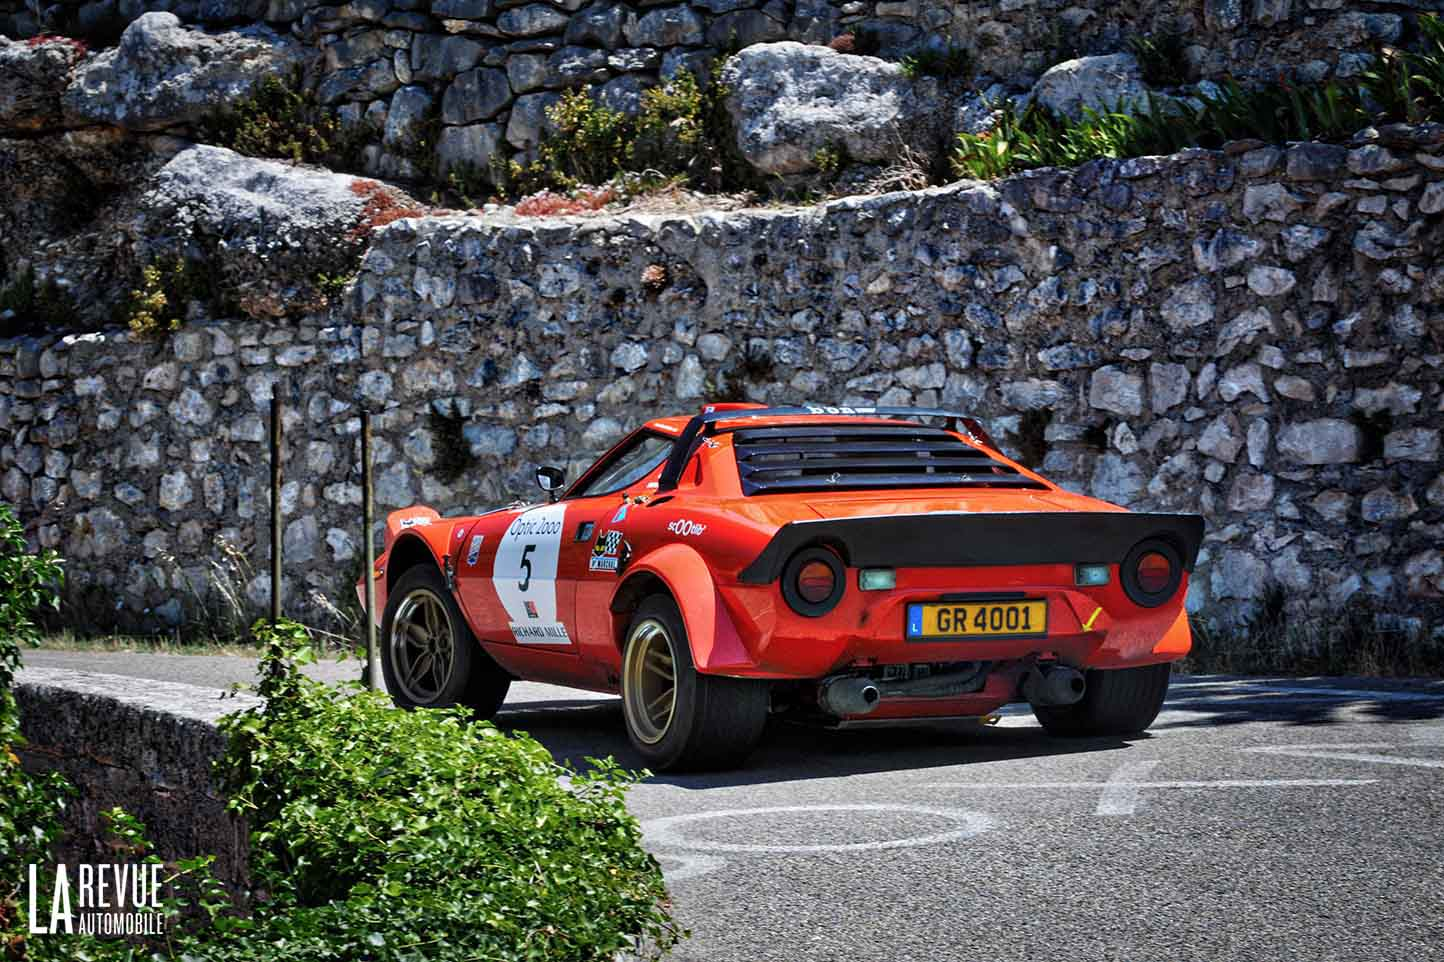 http://www.hiclasscar.com/wp-content/uploads/images/2017-lancia-stratos-3.jpg